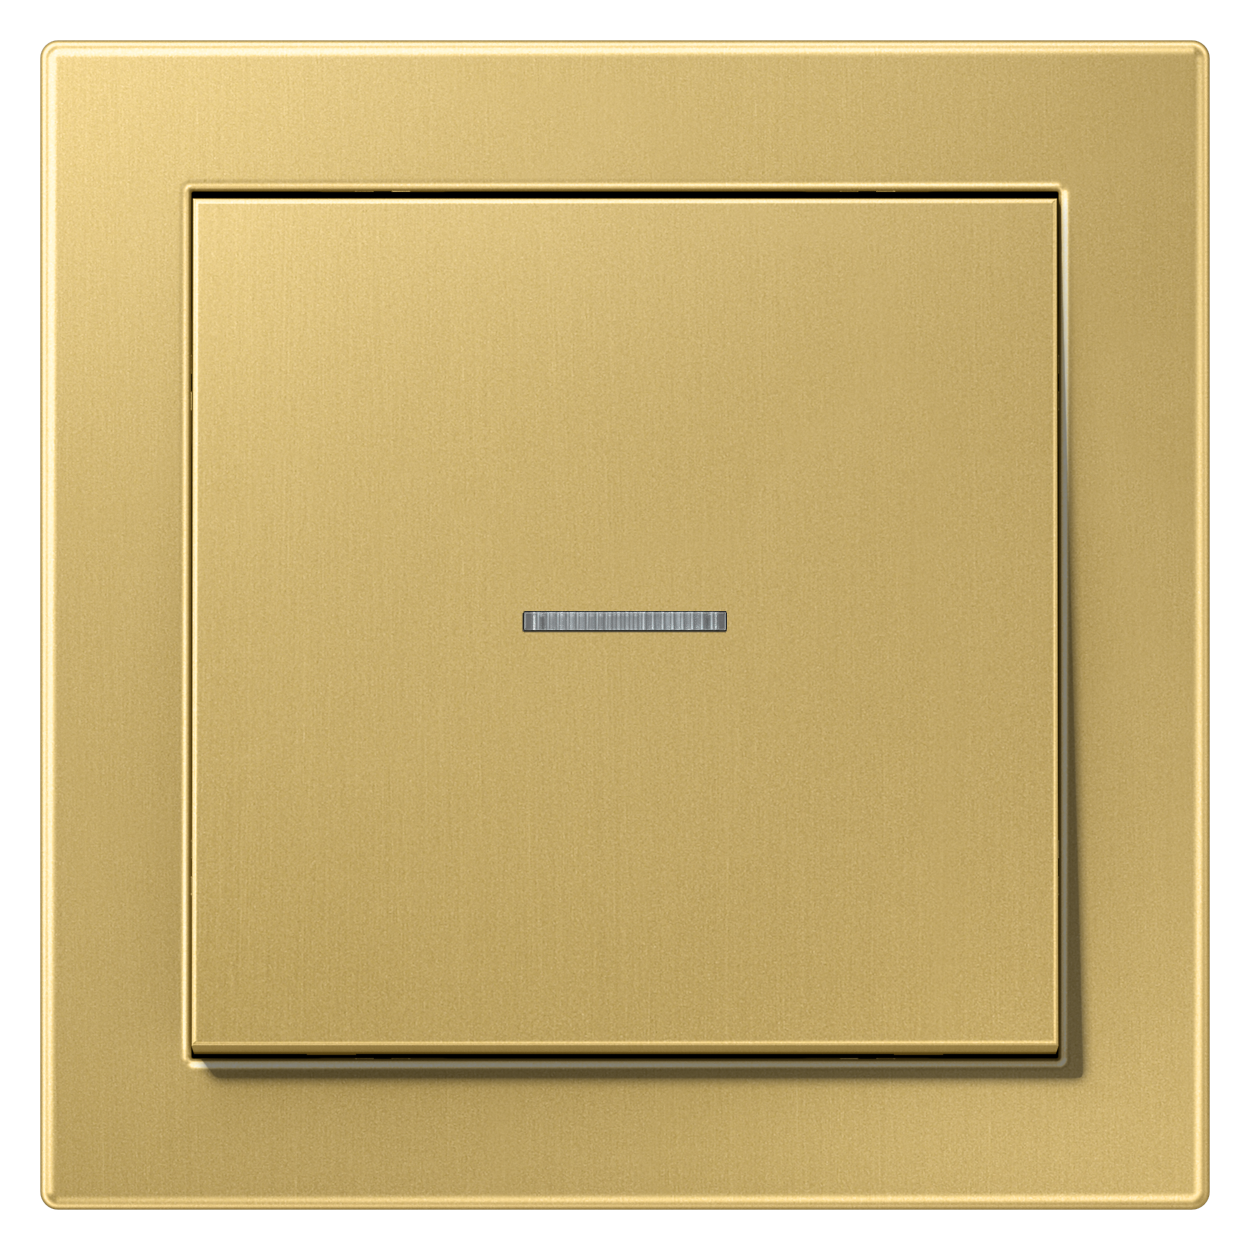 JUNG_LS_Design_classic_brass_switch-lense